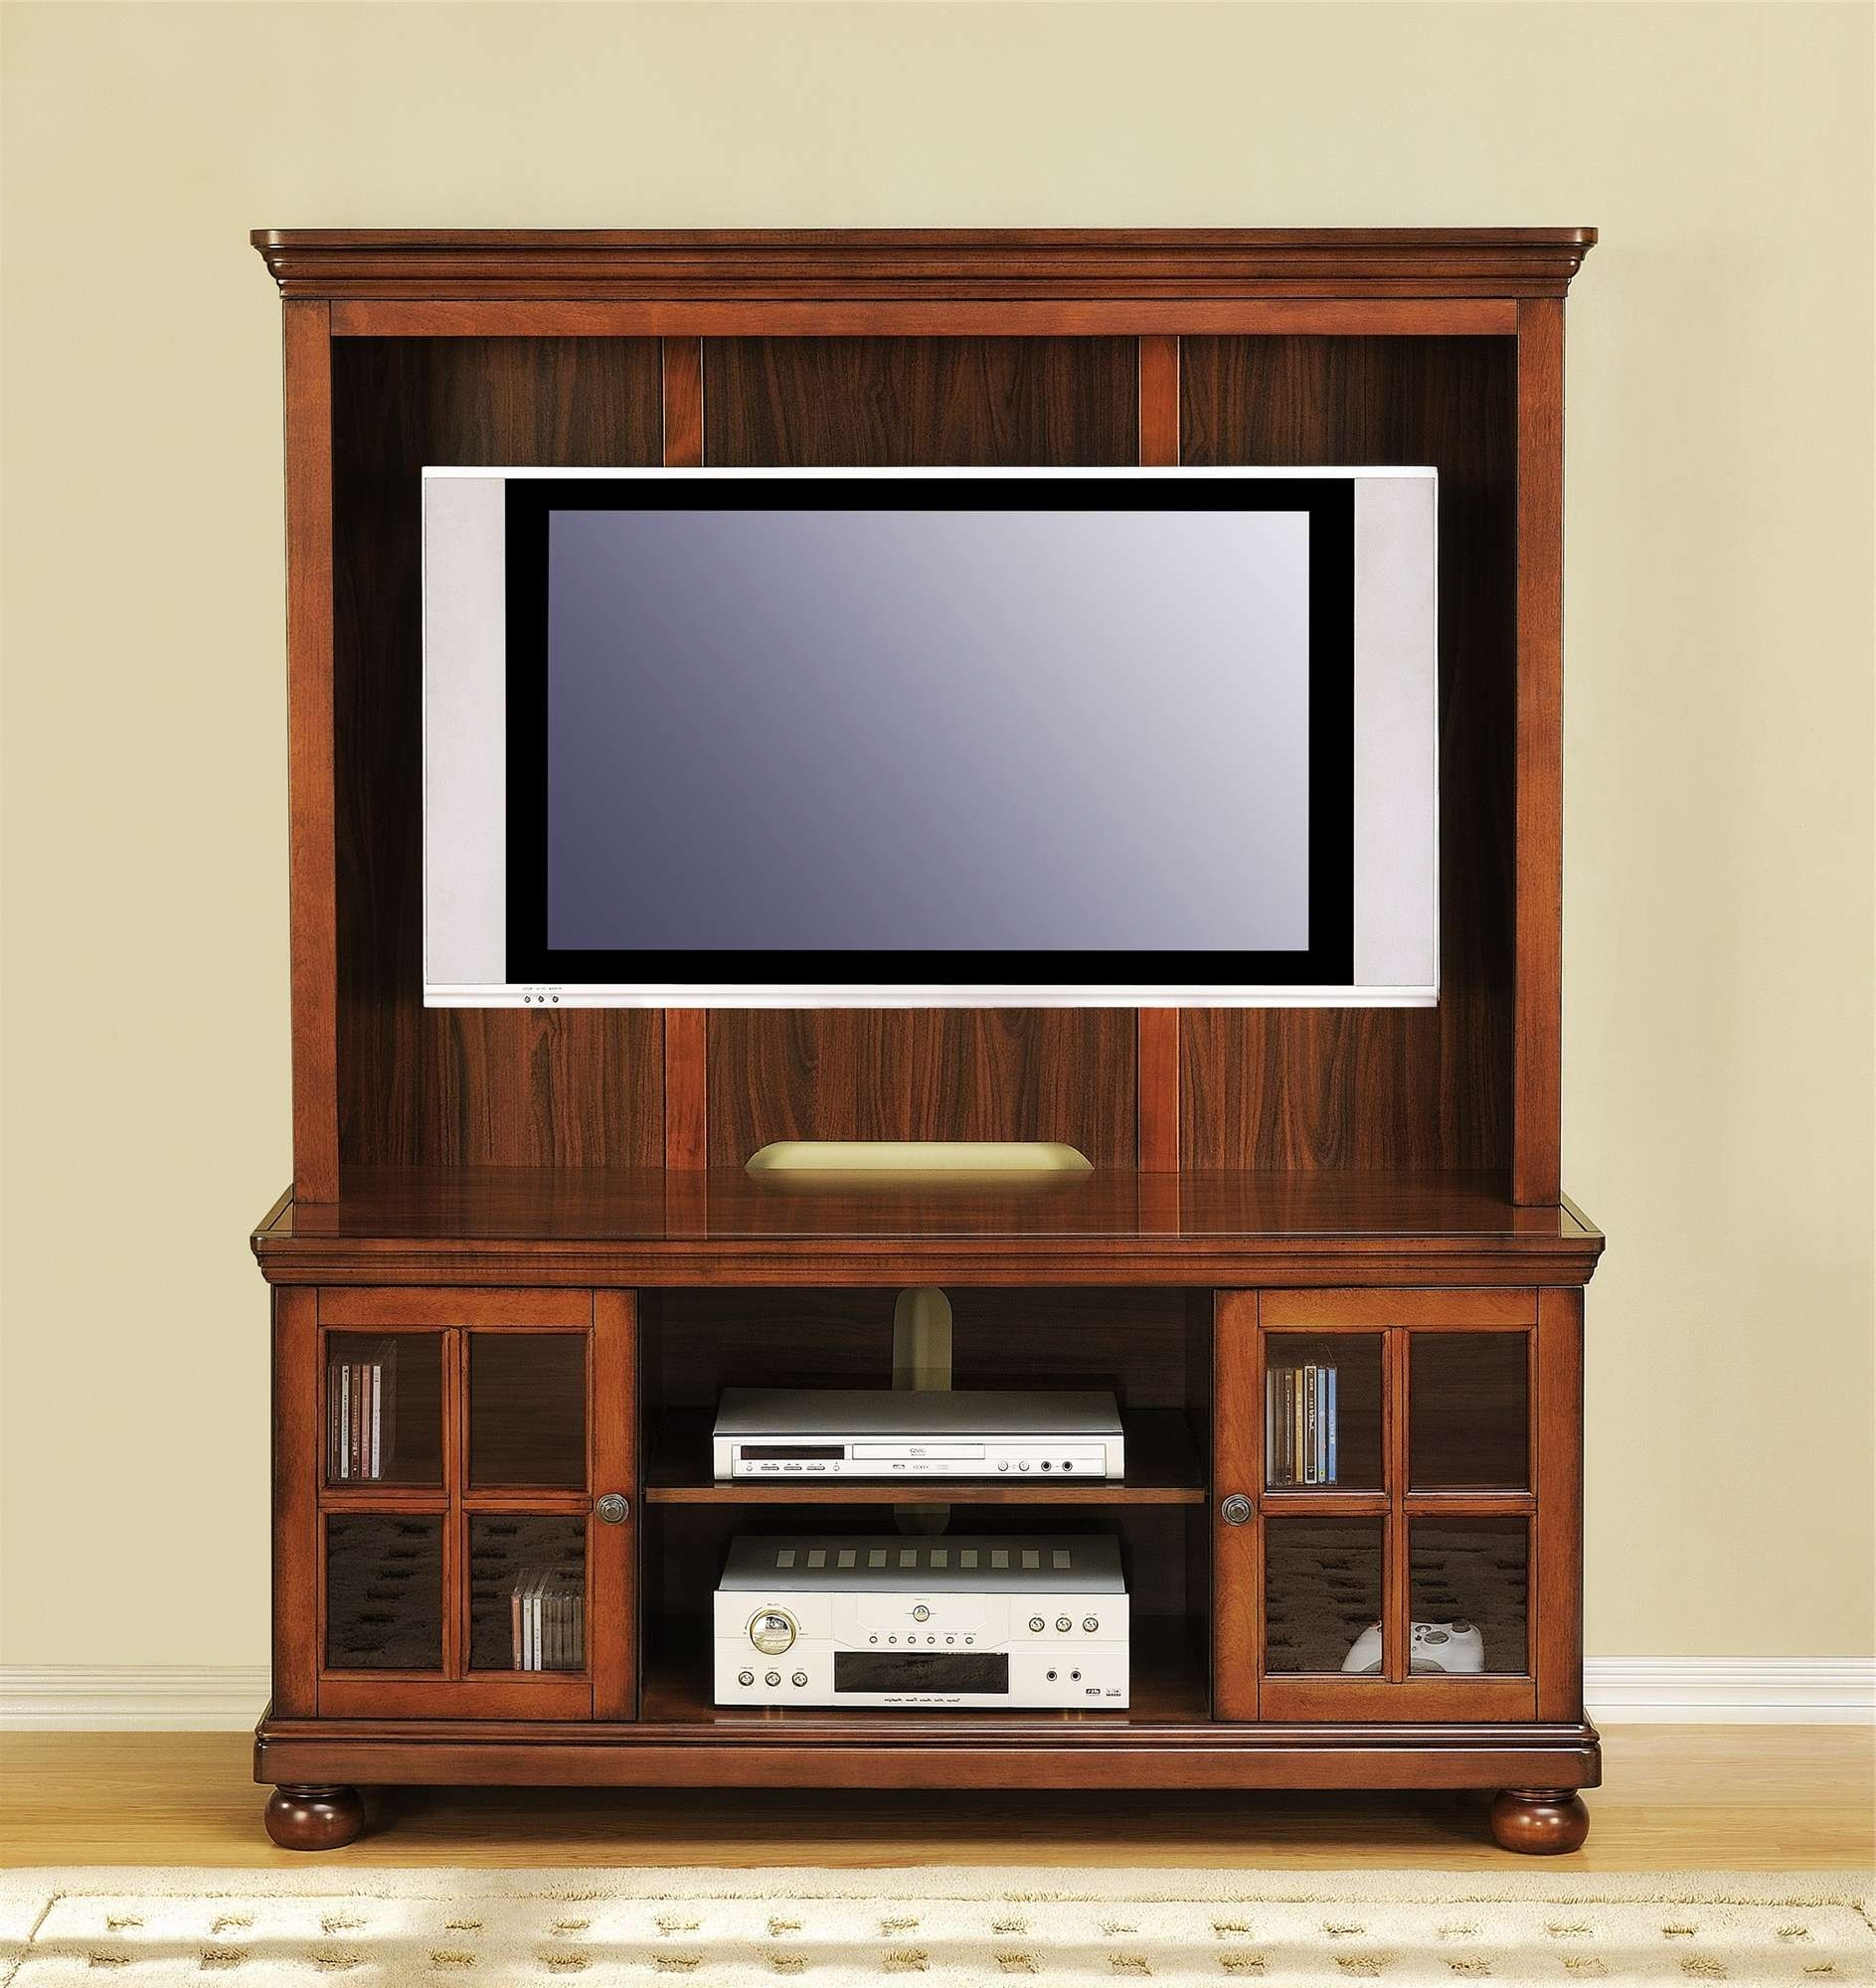 Modest Ideas Flat Screen Tv Cabinet Tall Brown Santos Mahogany Intended For Mahogany Tv Stands Furniture (View 8 of 15)